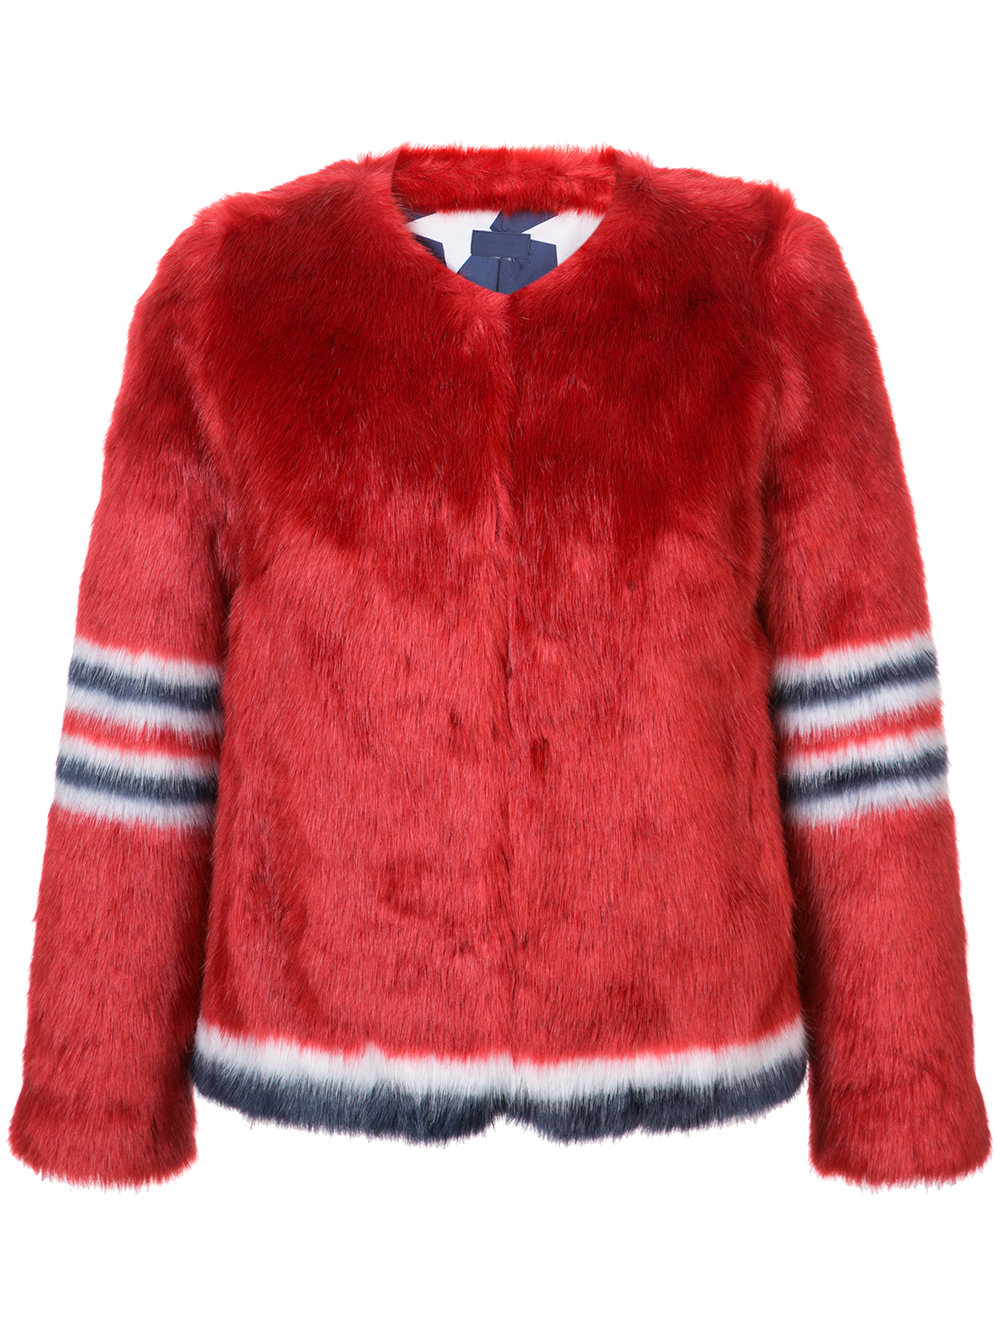 MOTHER furry jacket - $375